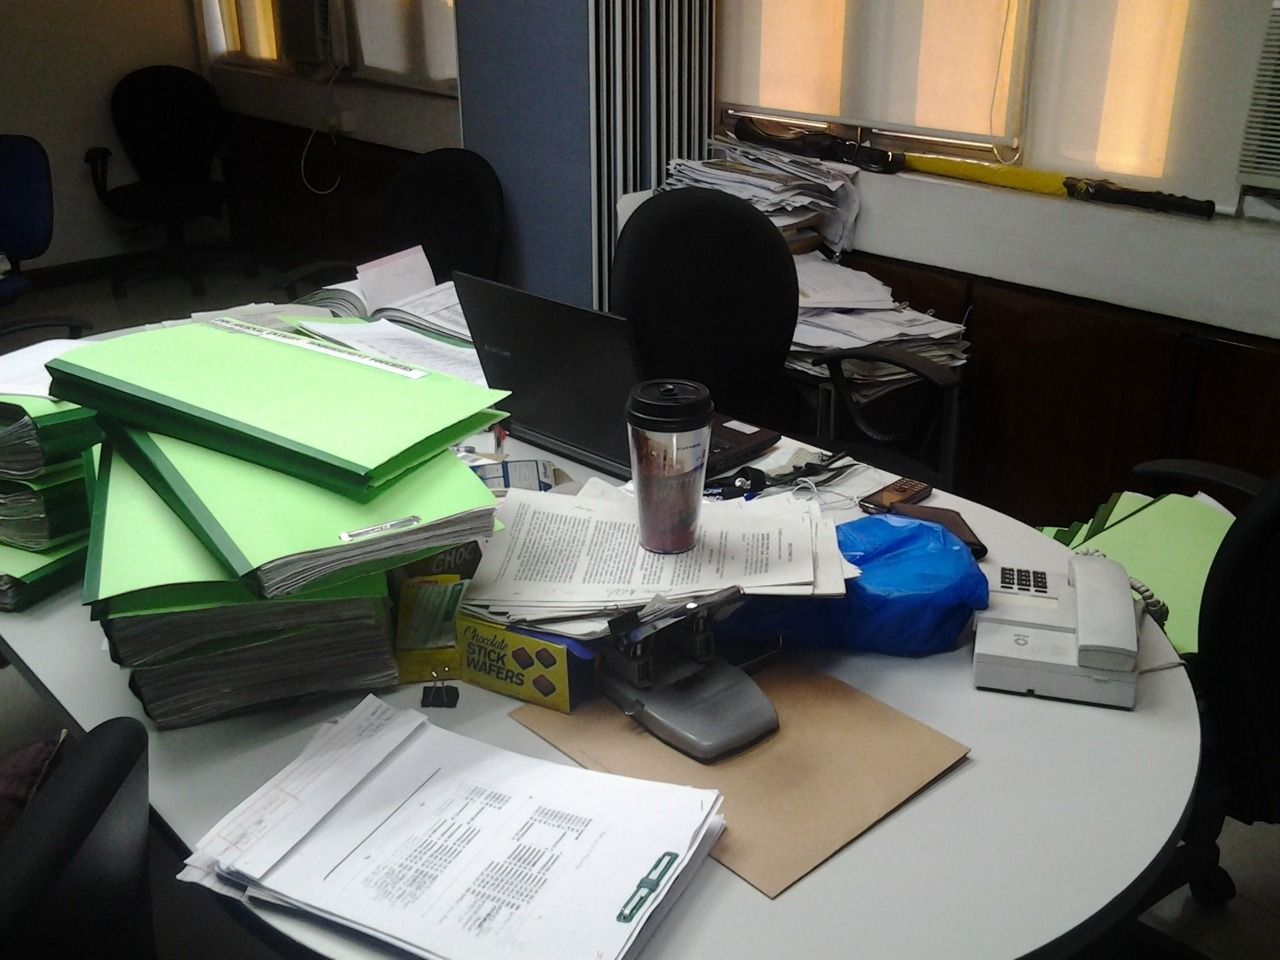 My work area at the client's office. This is as organized as I can get.